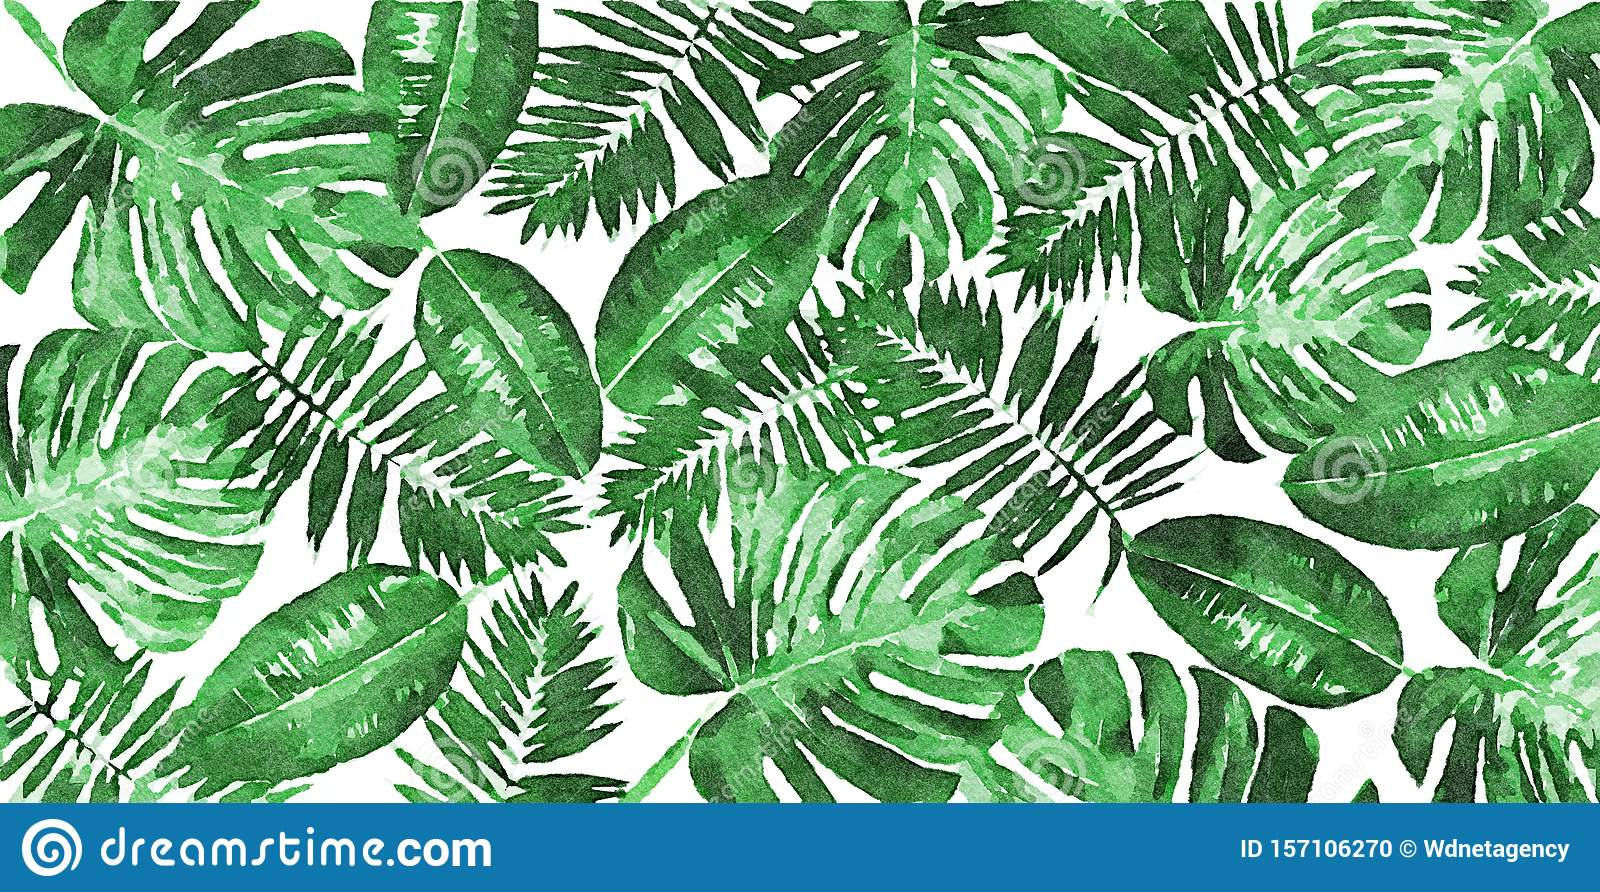 Trendy Tropical Leaves Decoration Stock Illustration Illustration Of Flower Artwork 157106270 Hand painted illustration isolated on white background. https www dreamstime com trendy tropical leaves decoration digital art painting mixed composition trendy tropical green leaves monstera palm ficus image157106270